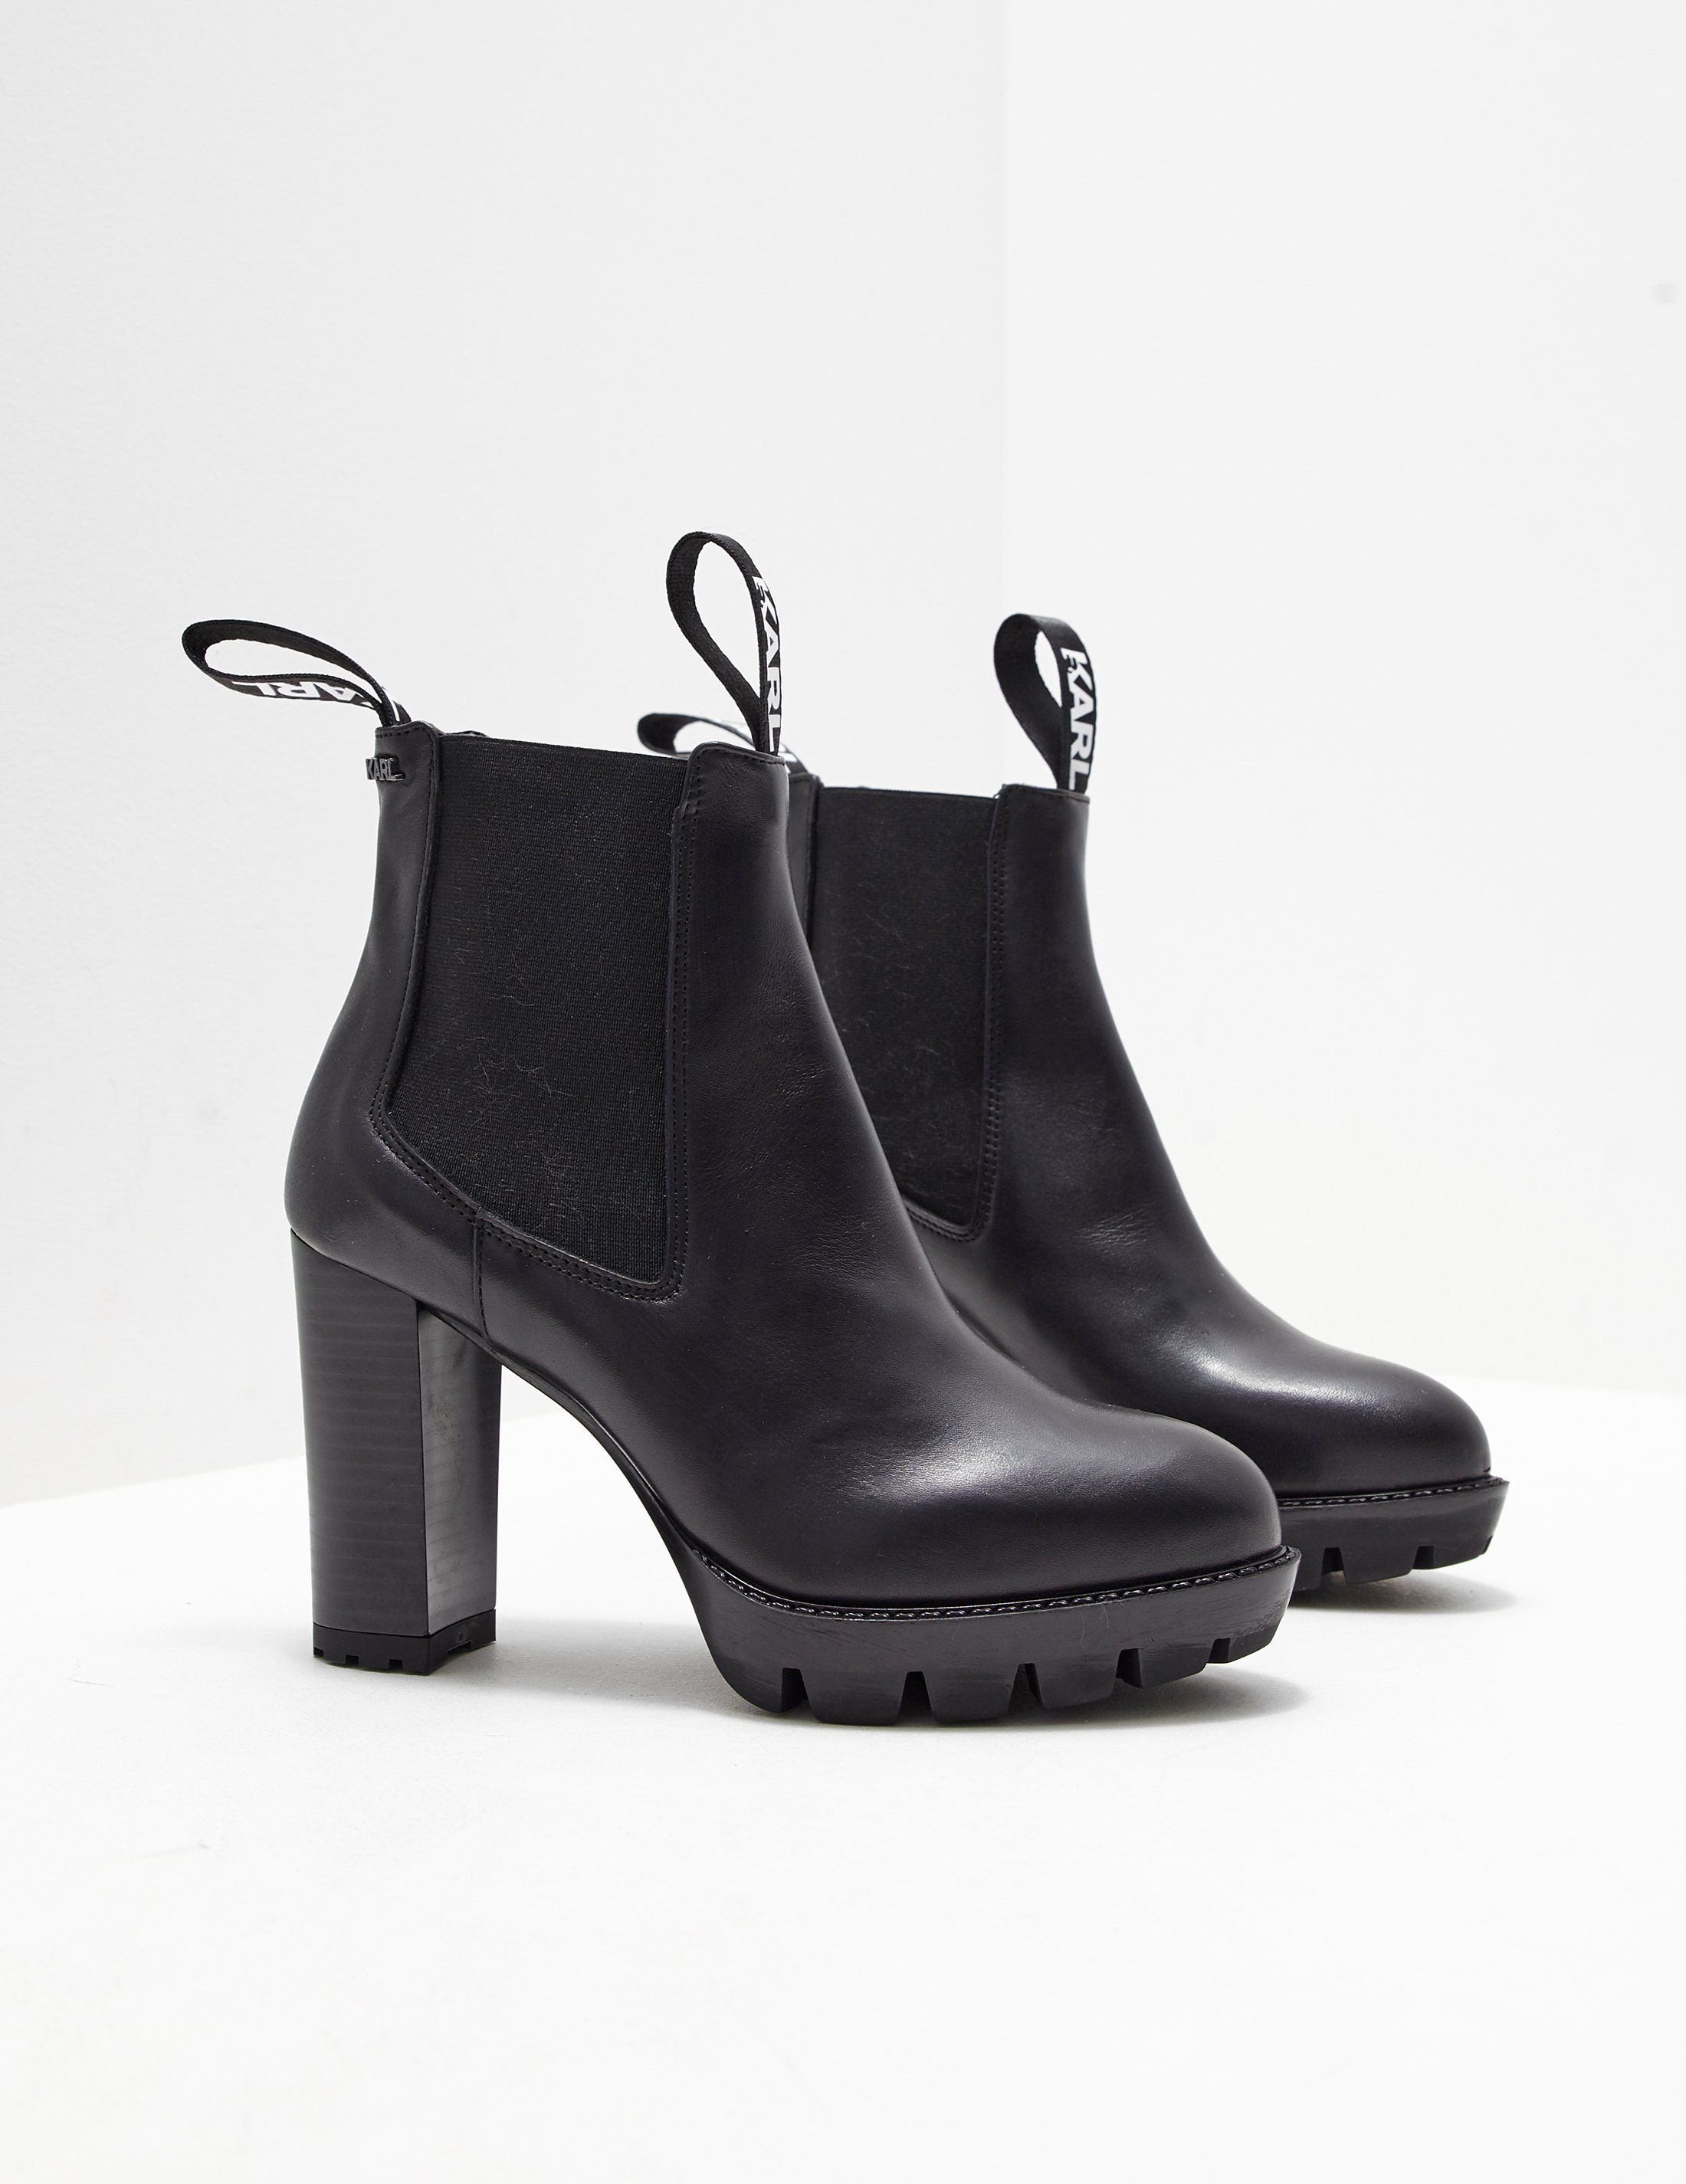 Karl Lagerfeld Ankle Boots - Online Exclusive